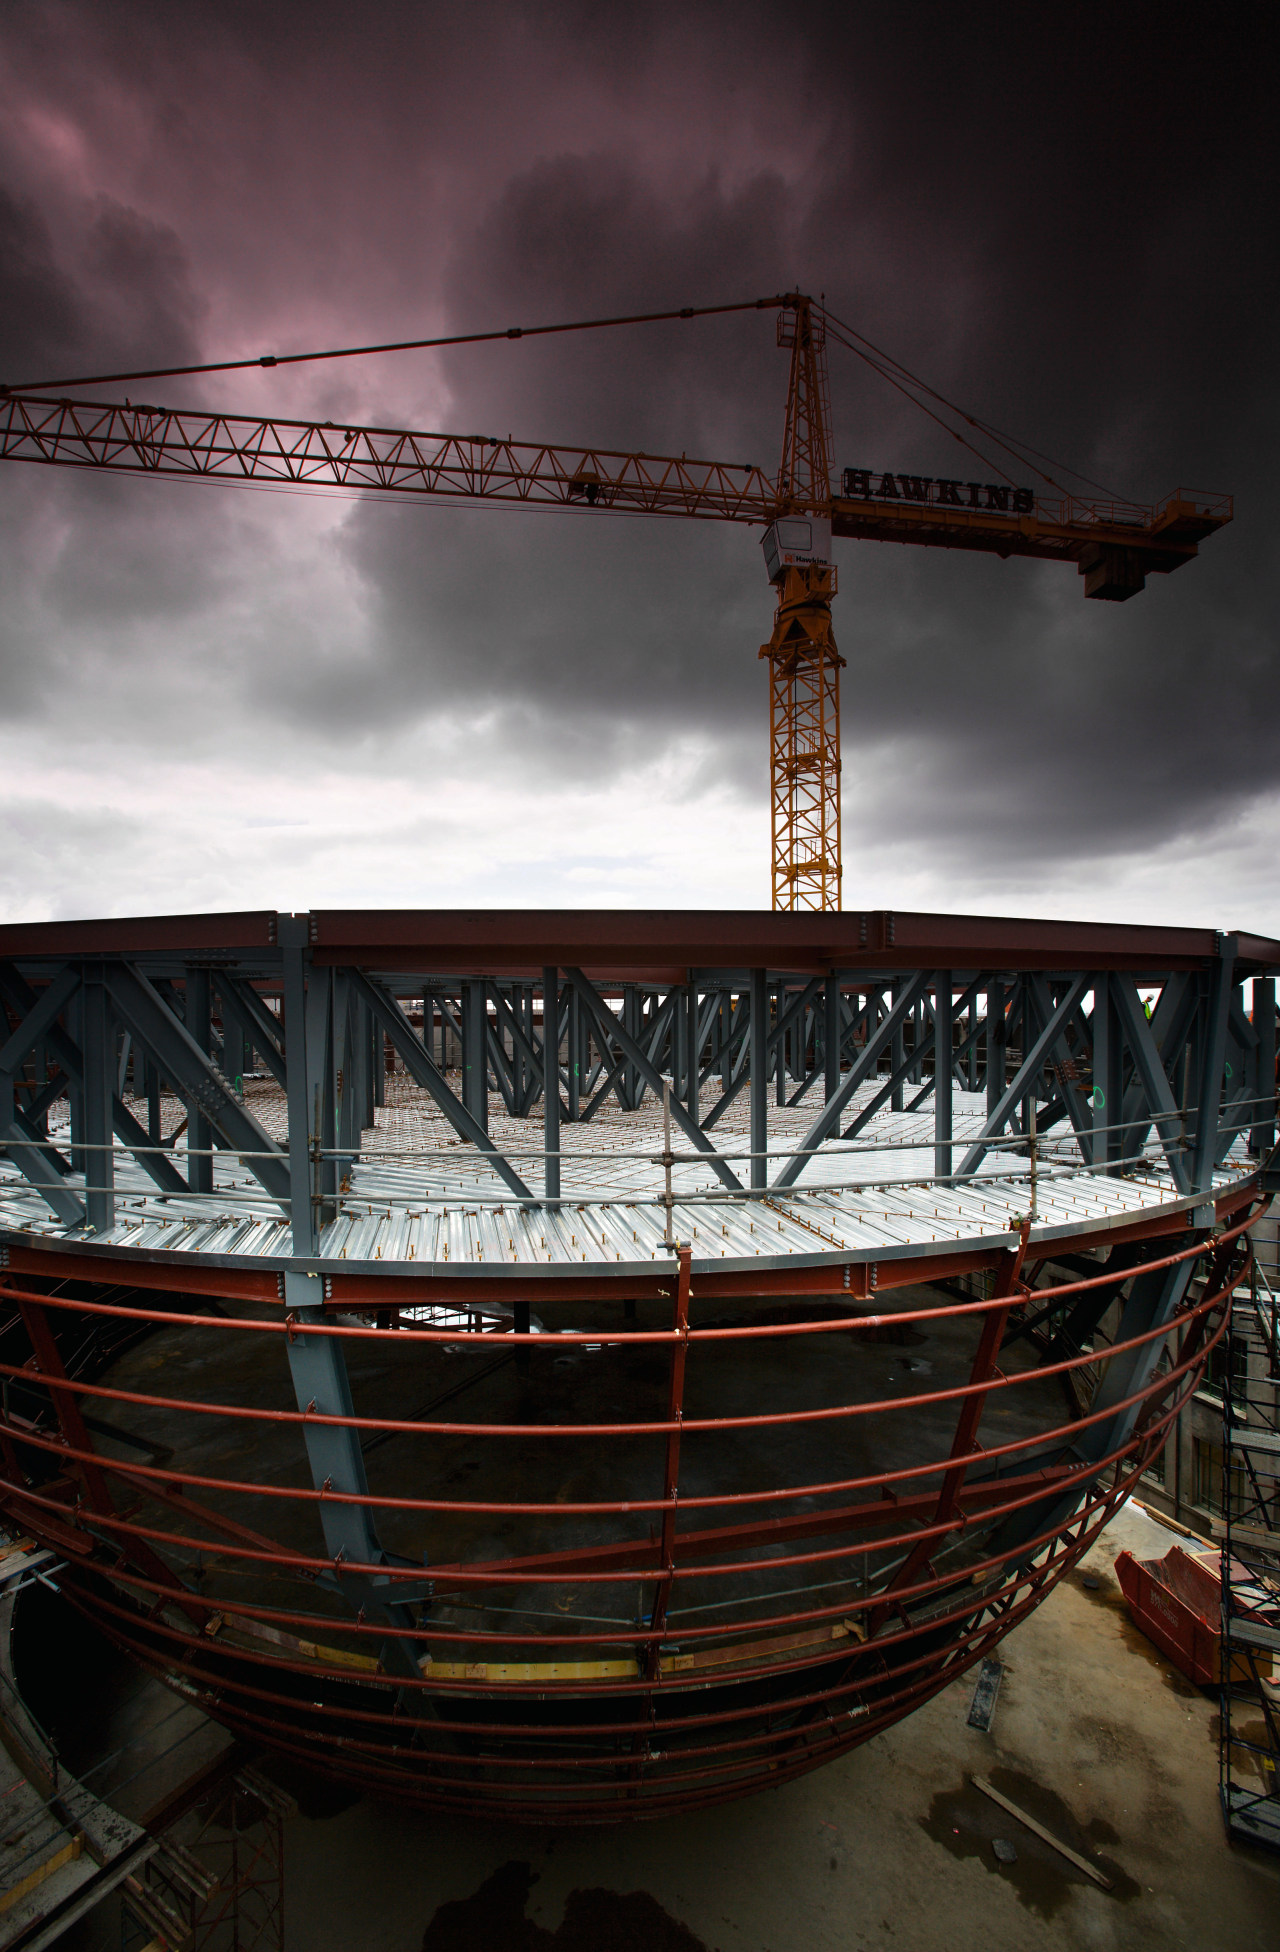 A view of the steel structure of the reflection, sky, water, black